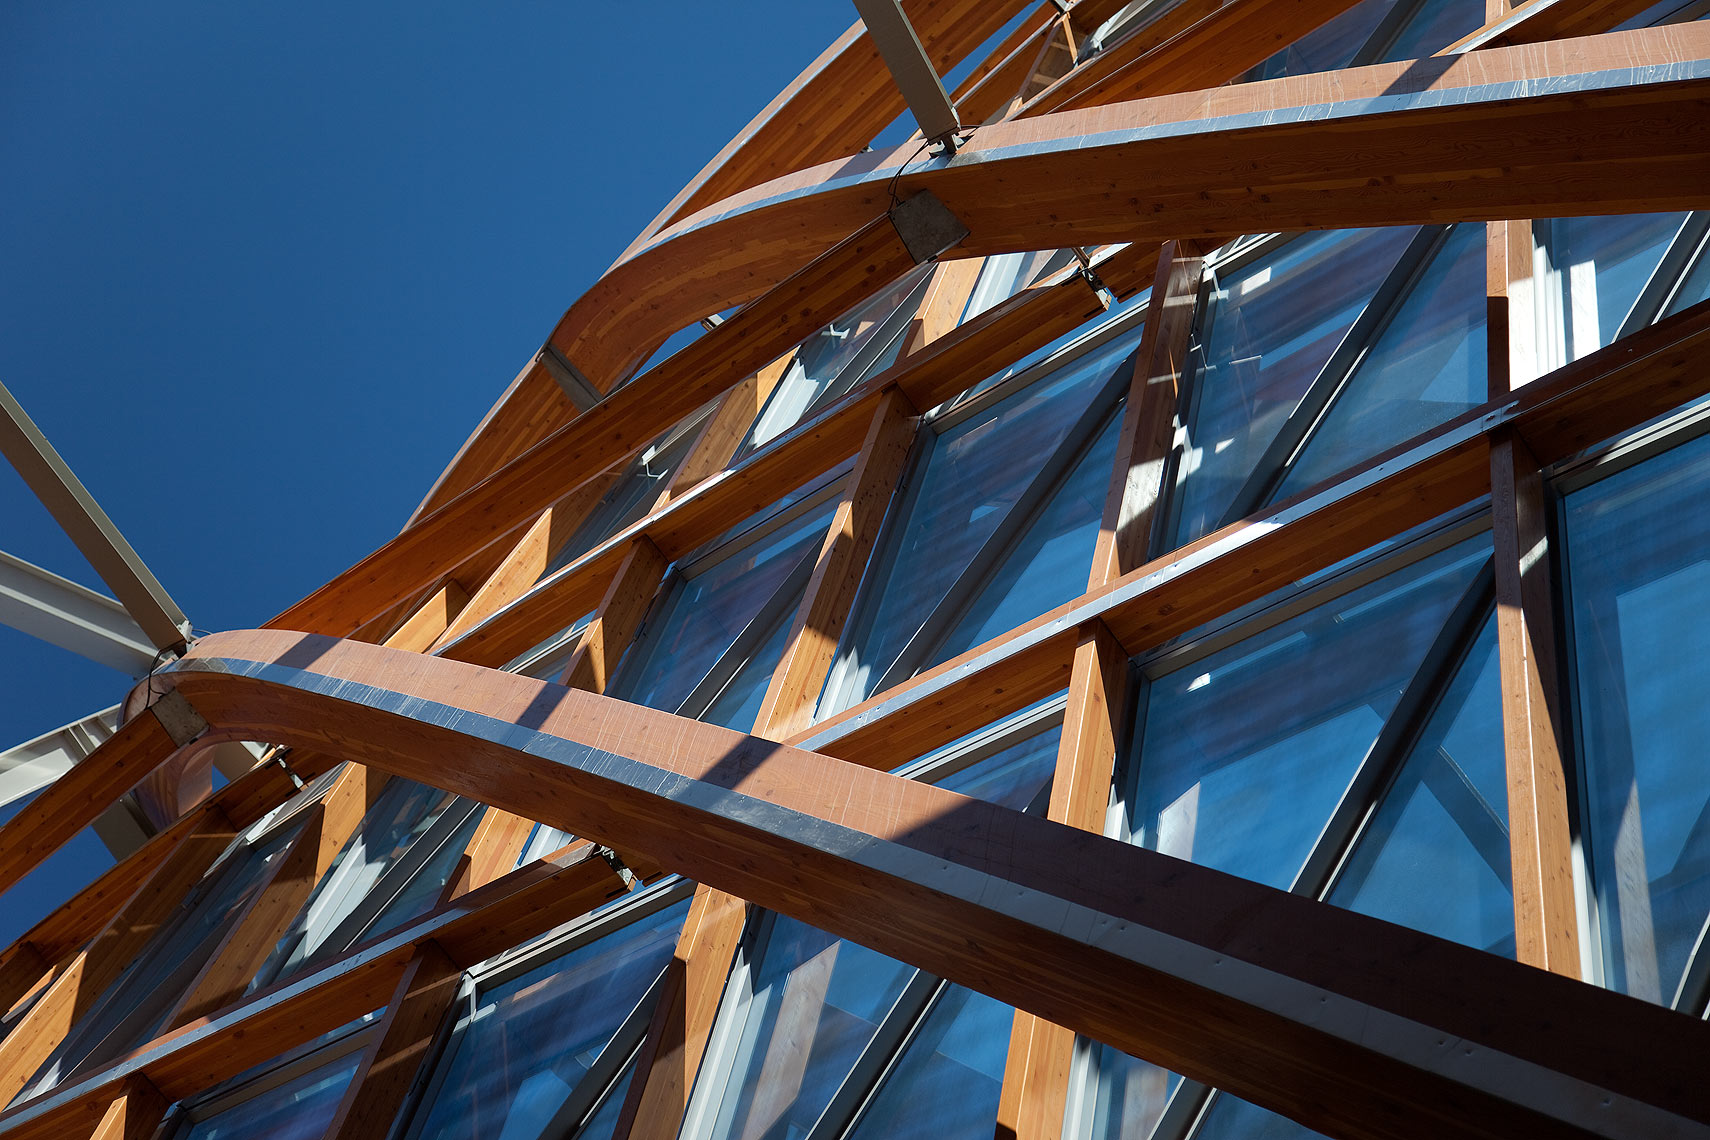 Glass and wood facade detail AGO Peter A. Sellar Architectural Photographer